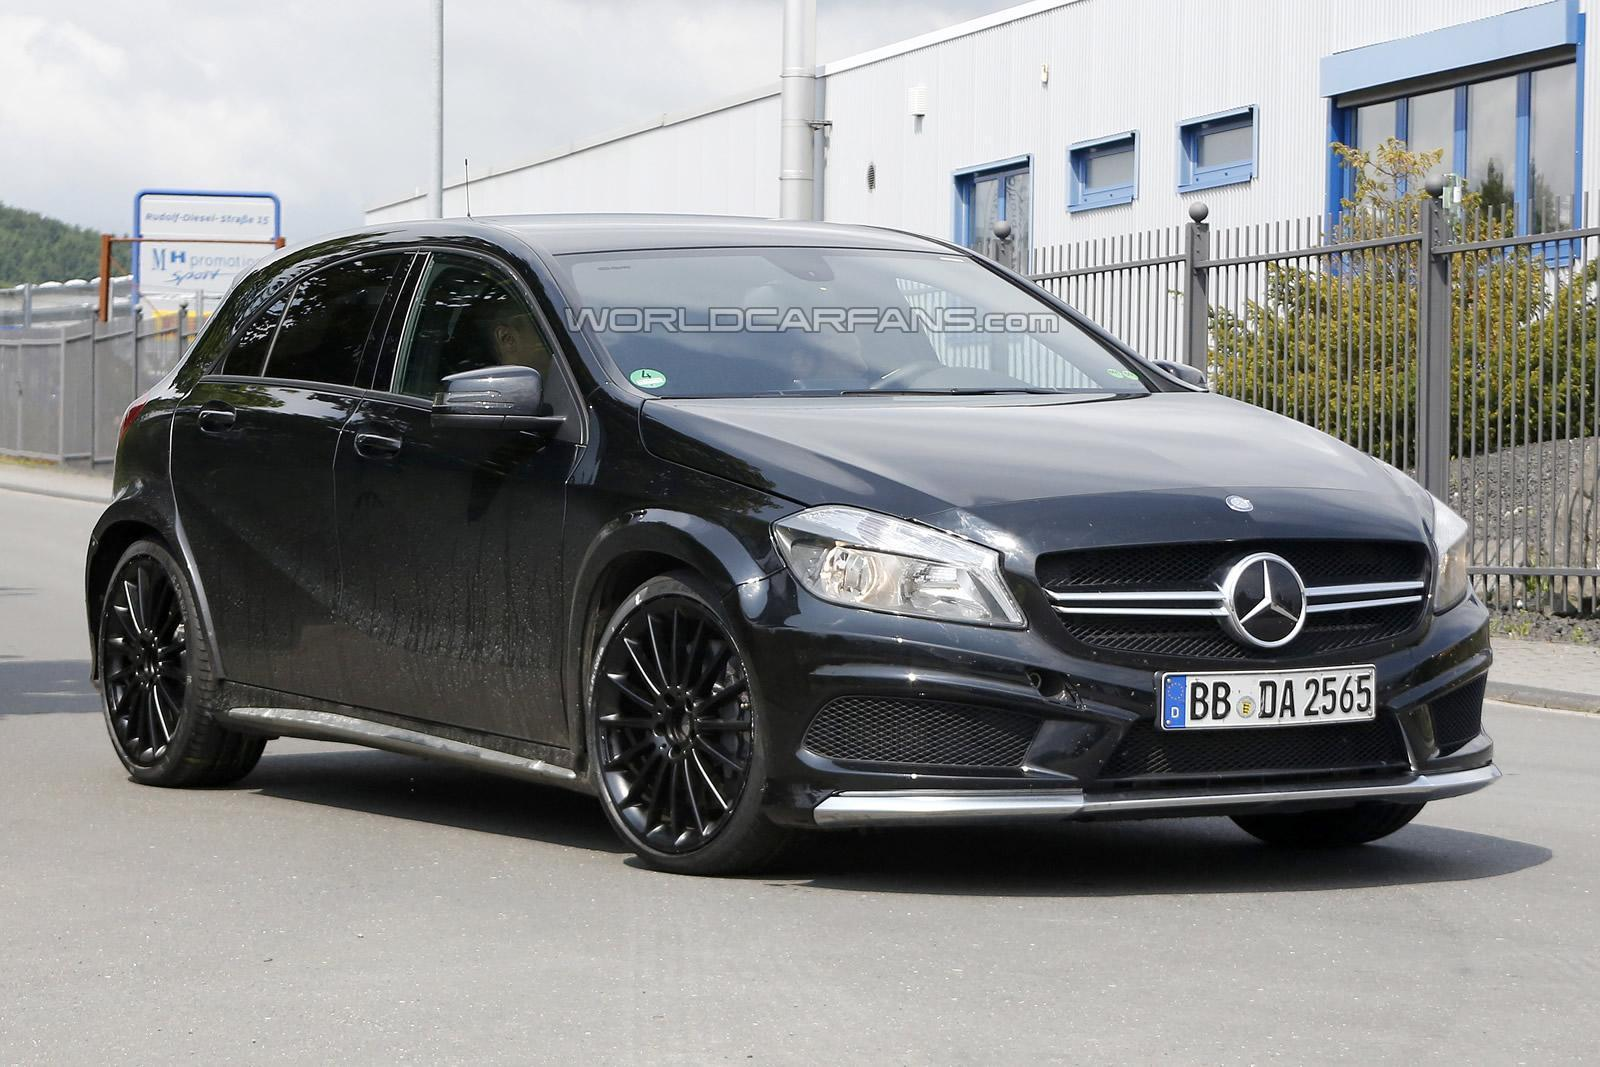 Blacked Out Mercedes e Class Mercedes A45 Amg Black Series